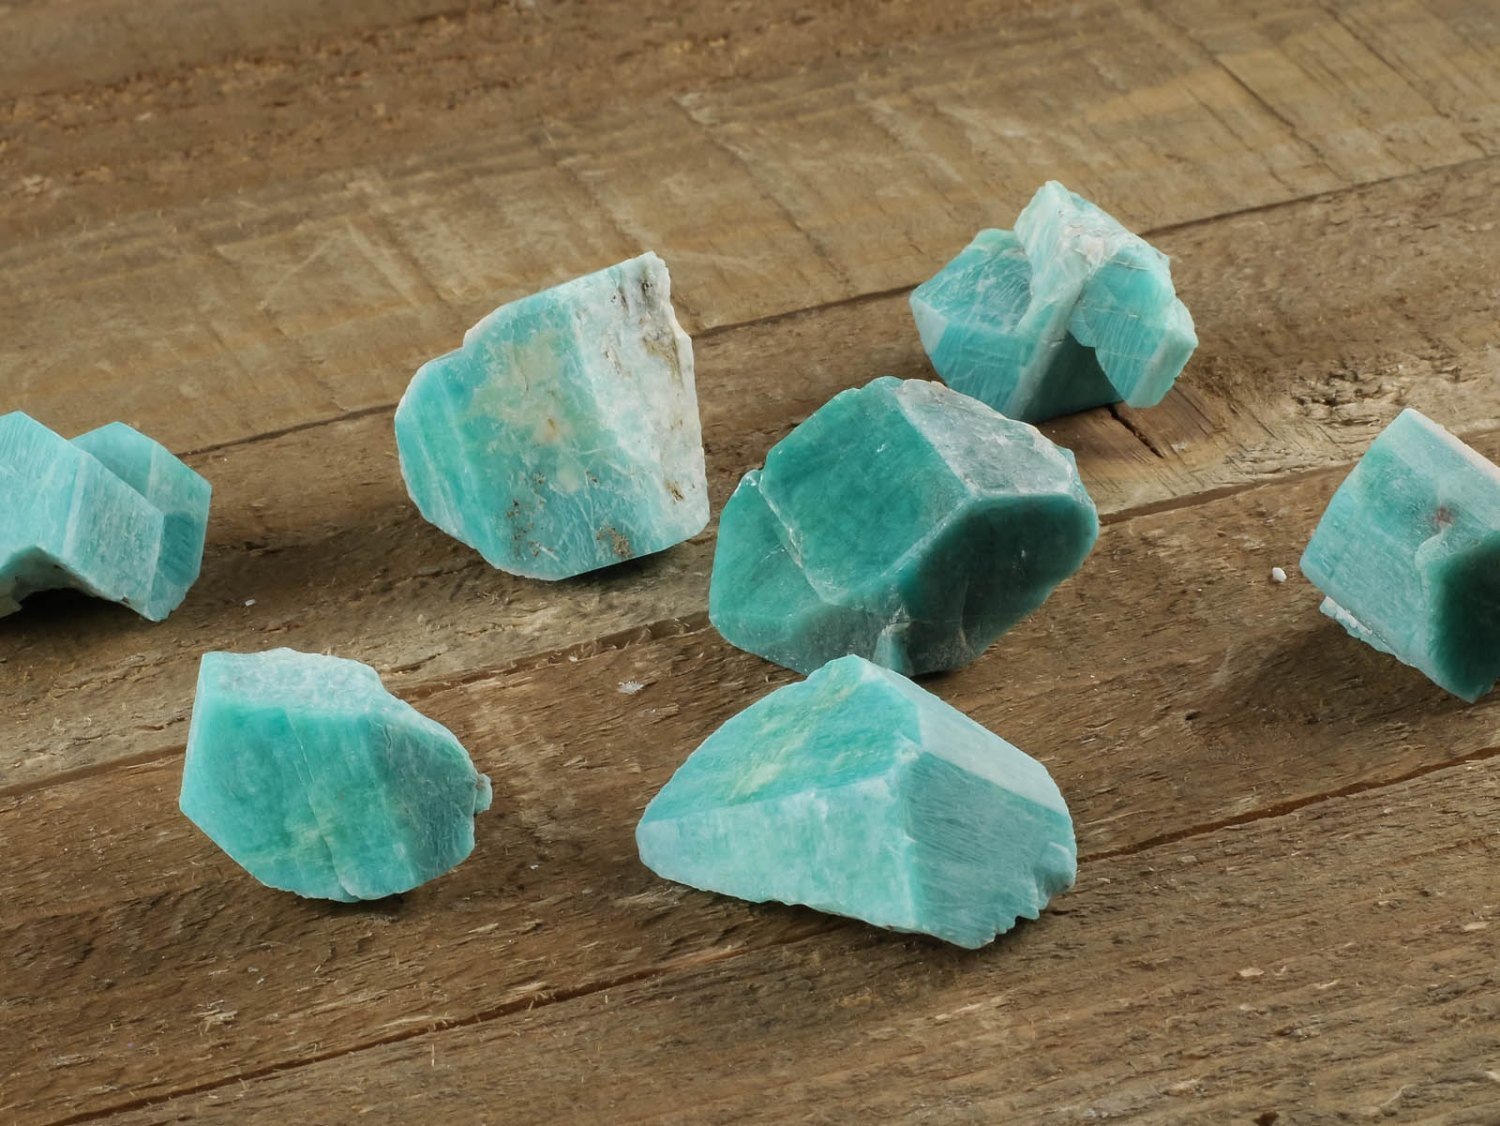 1 Medium Rough Amazonite Crystal Raw Amazonite Stone Raw